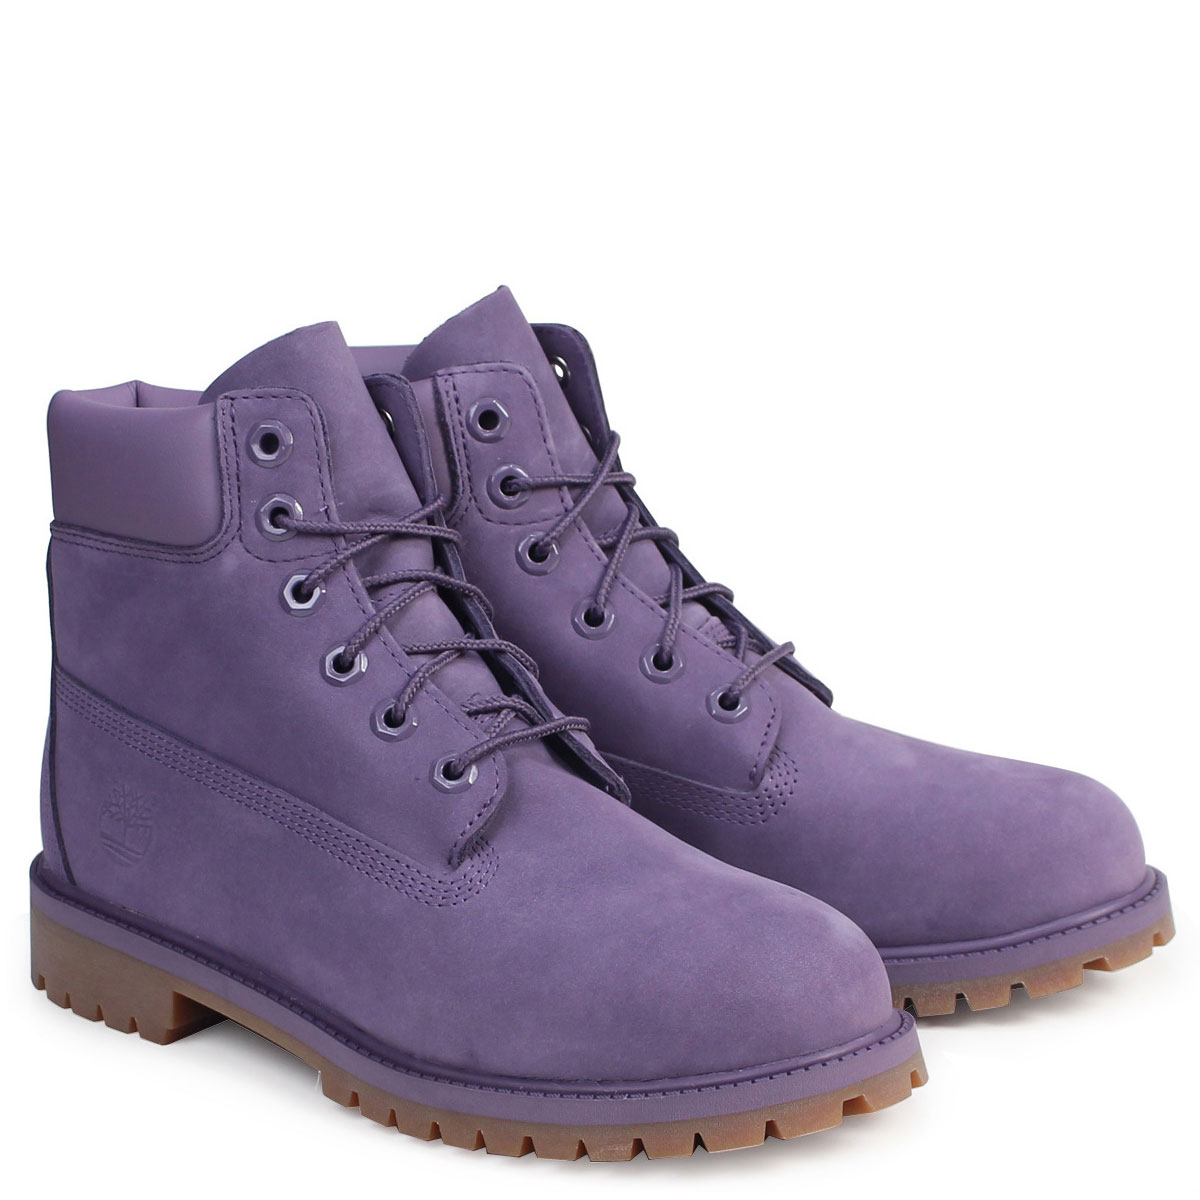 Timberland Lady's 6 inches Timberland boots 6INCHI PREMIUM WATERPROOF BOOTS A1OCR M Wise waterproofing purple [810 Shinnyu load] [178]